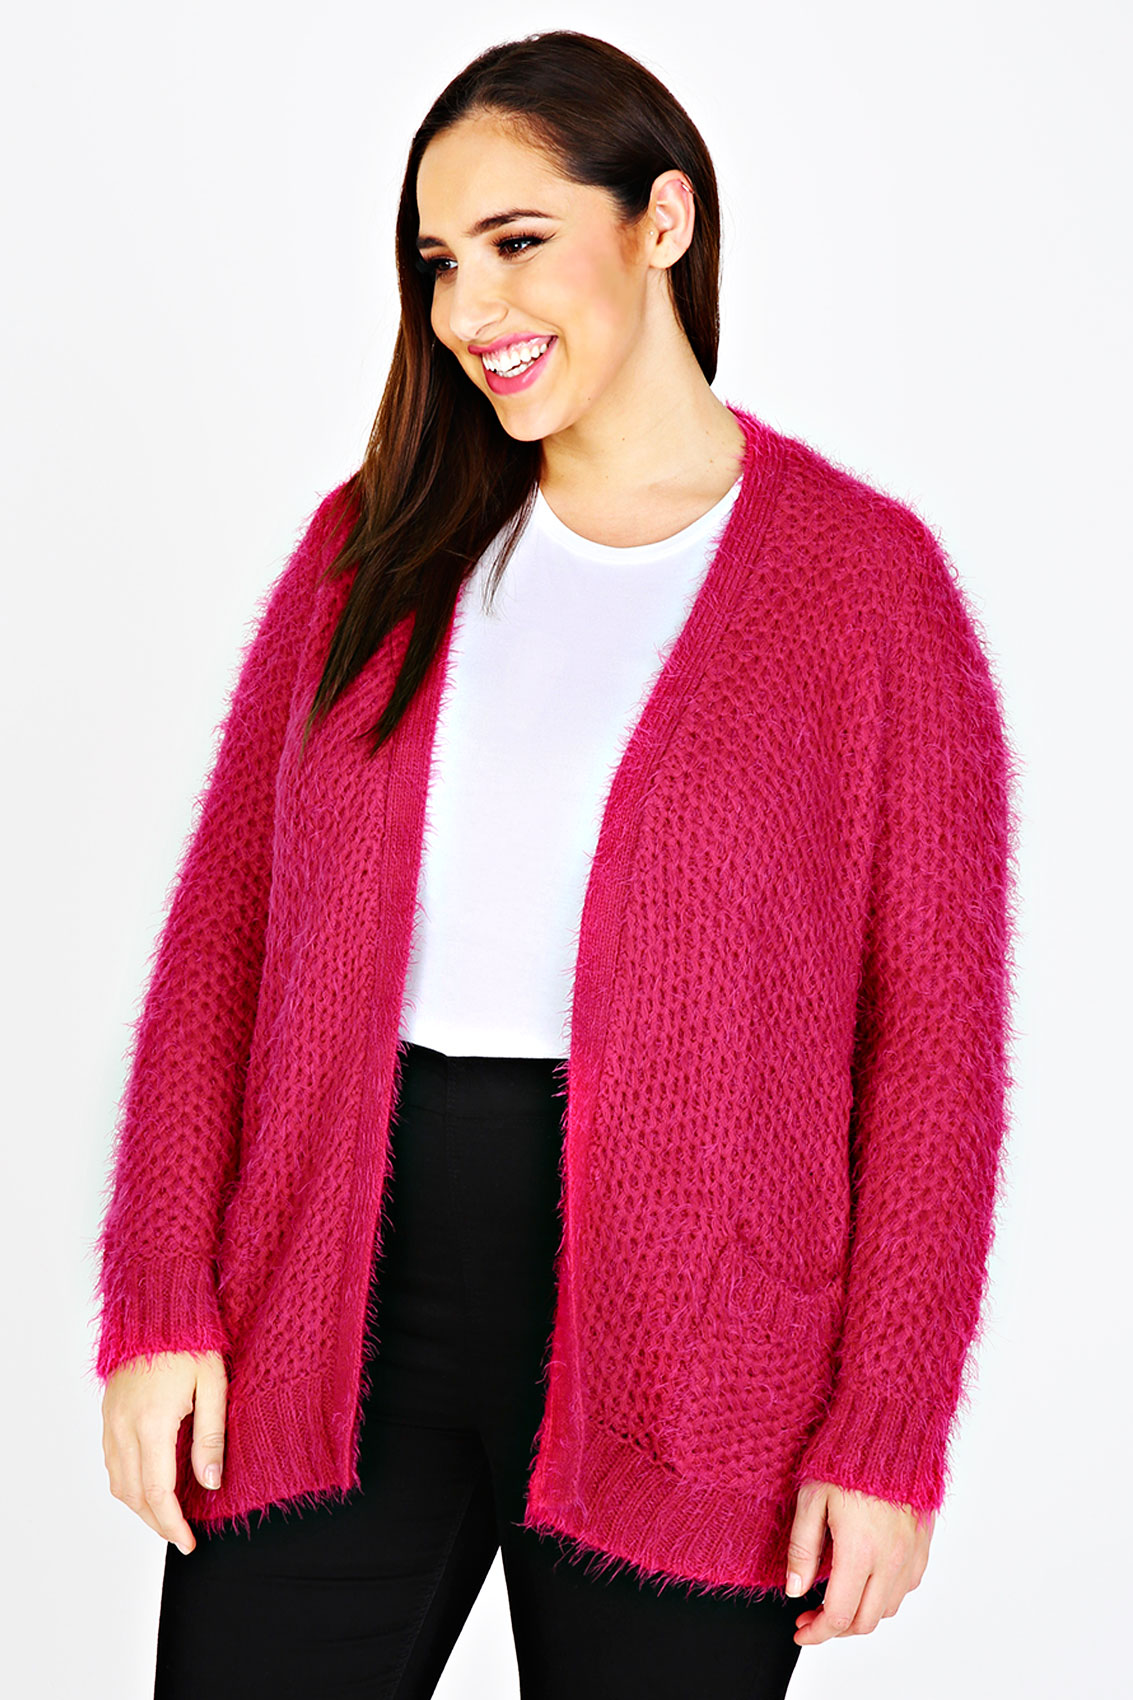 Hot Pink Cardigan ($ - $): 30 of items - Shop Hot Pink Cardigan from ALL your favorite stores & find HUGE SAVINGS up to 80% off Hot Pink Cardigan, including GREAT DEALS like Urban Outfitters Sweaters | Hot Pink Cardigan By Lux Size Small | Color: Pink | Size: Xs ($).